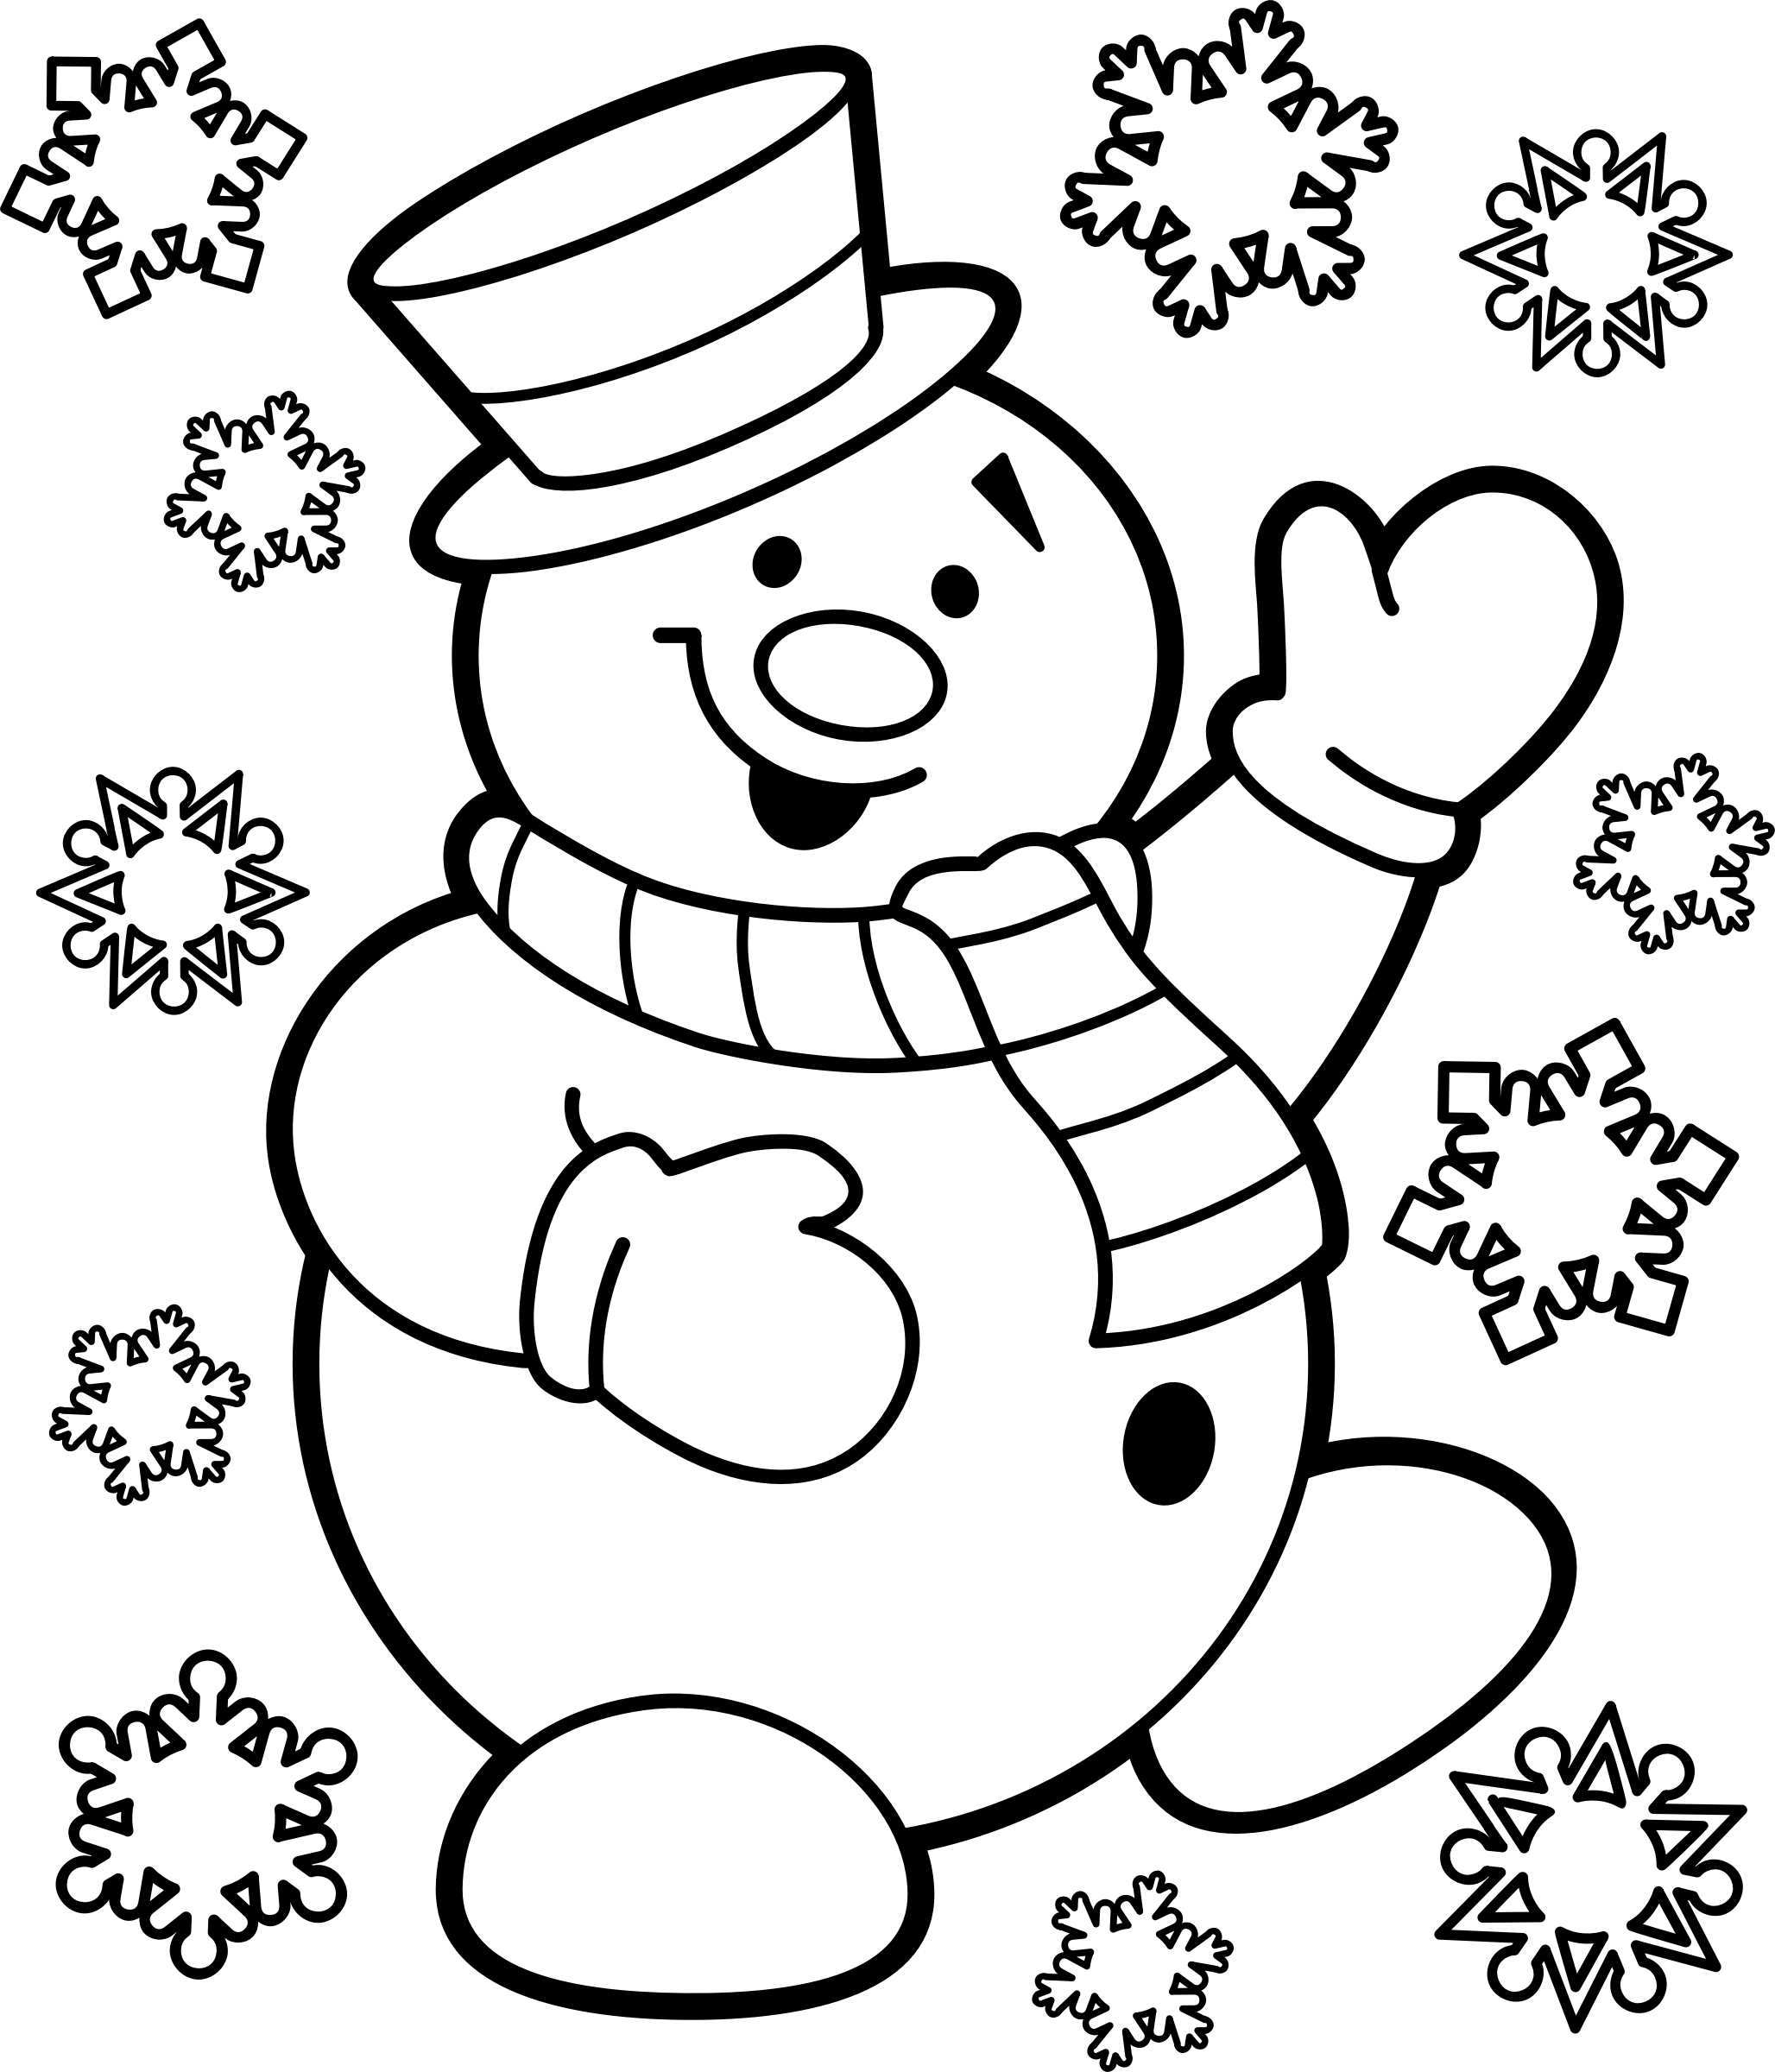 Vector snowman black and white. Christmas icons png free